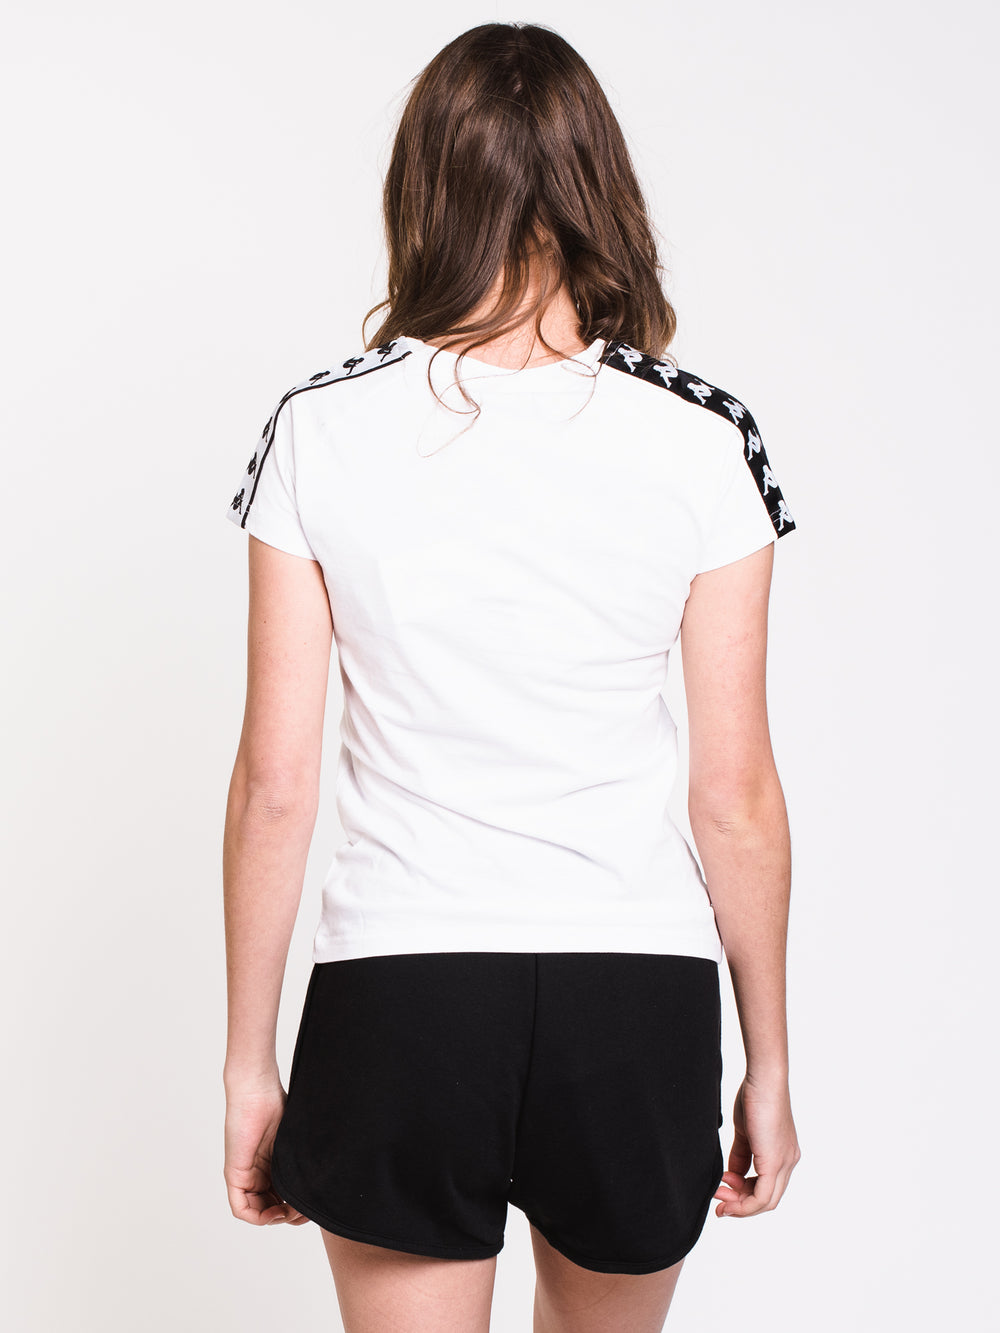 WOMENS BANDA WOEN - WHITE/BLACK